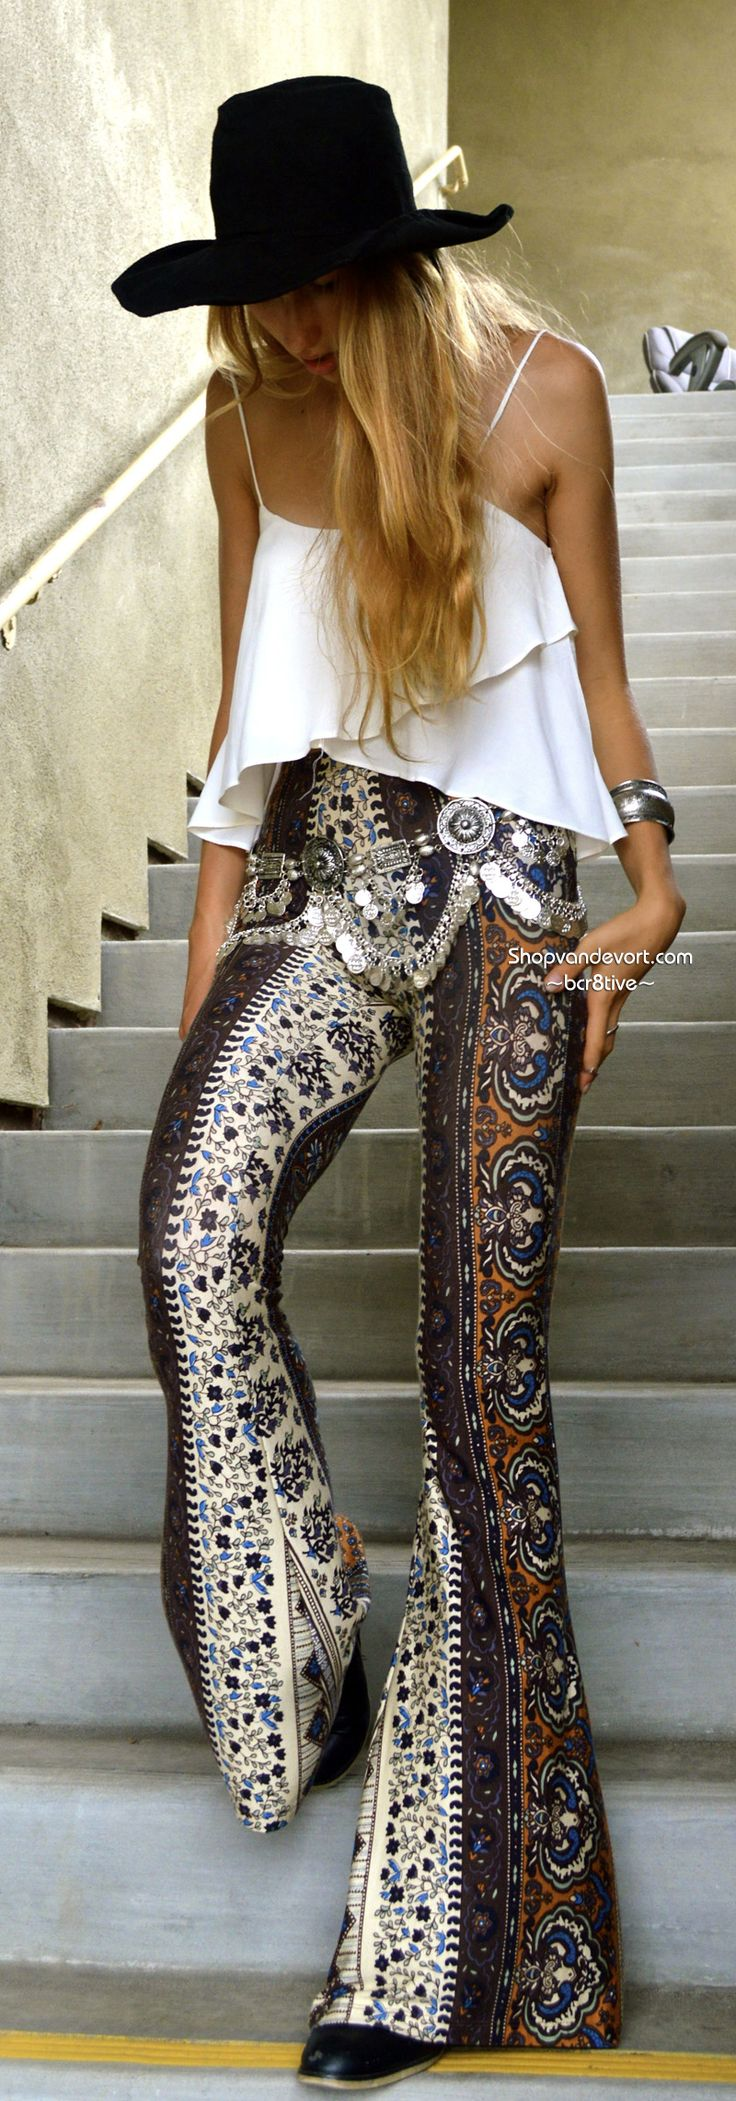 ☮ American Hippie Bohemian Style ~ Boho Palazzo Pants and Hat! Love this!